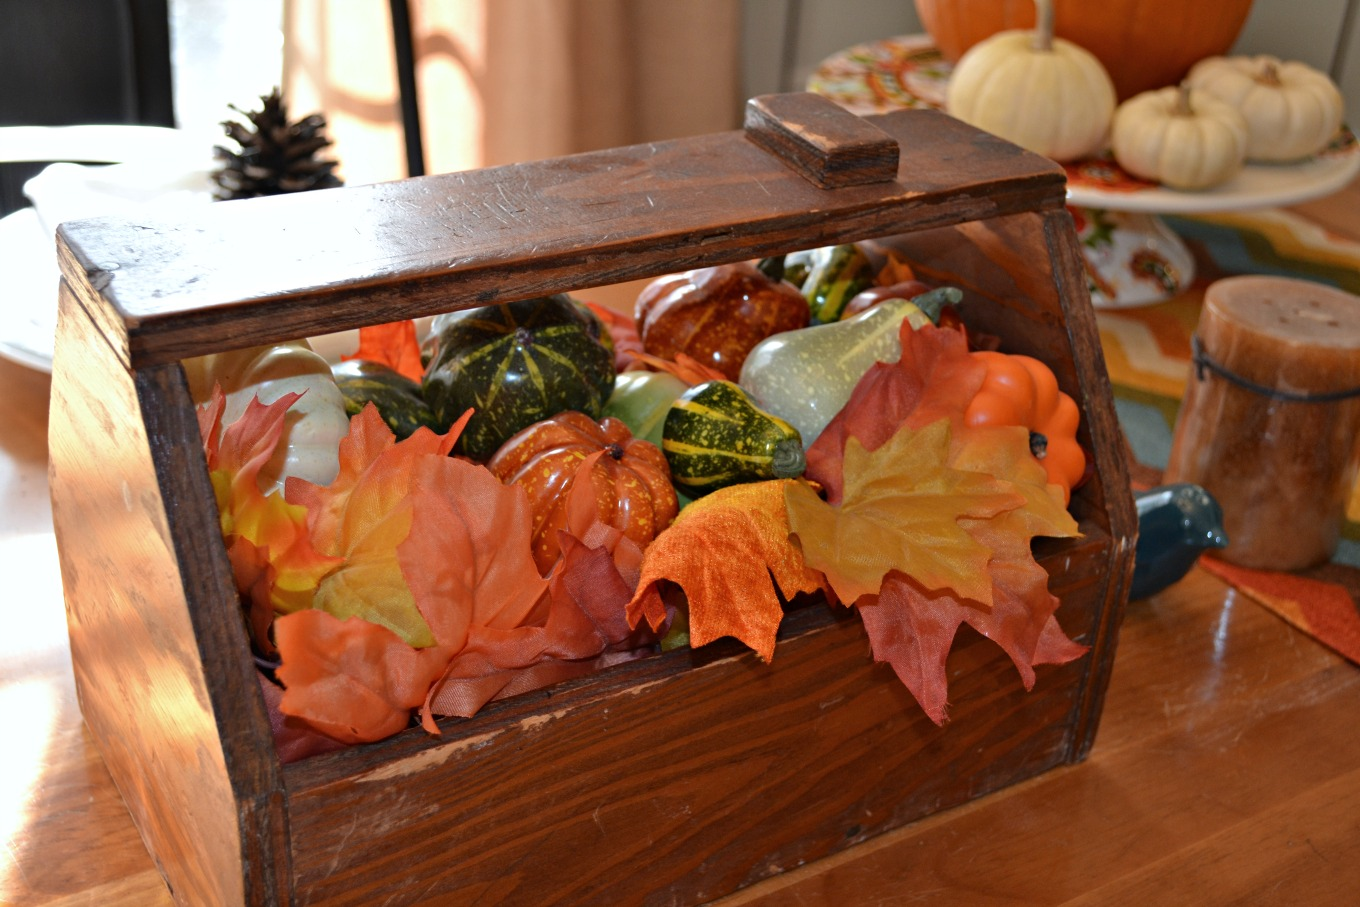 Pumpkins, gourds, and leaves in a toolbox make a centerpiece bringing natural elements to your Thanksgiving table - thediybungalow.com